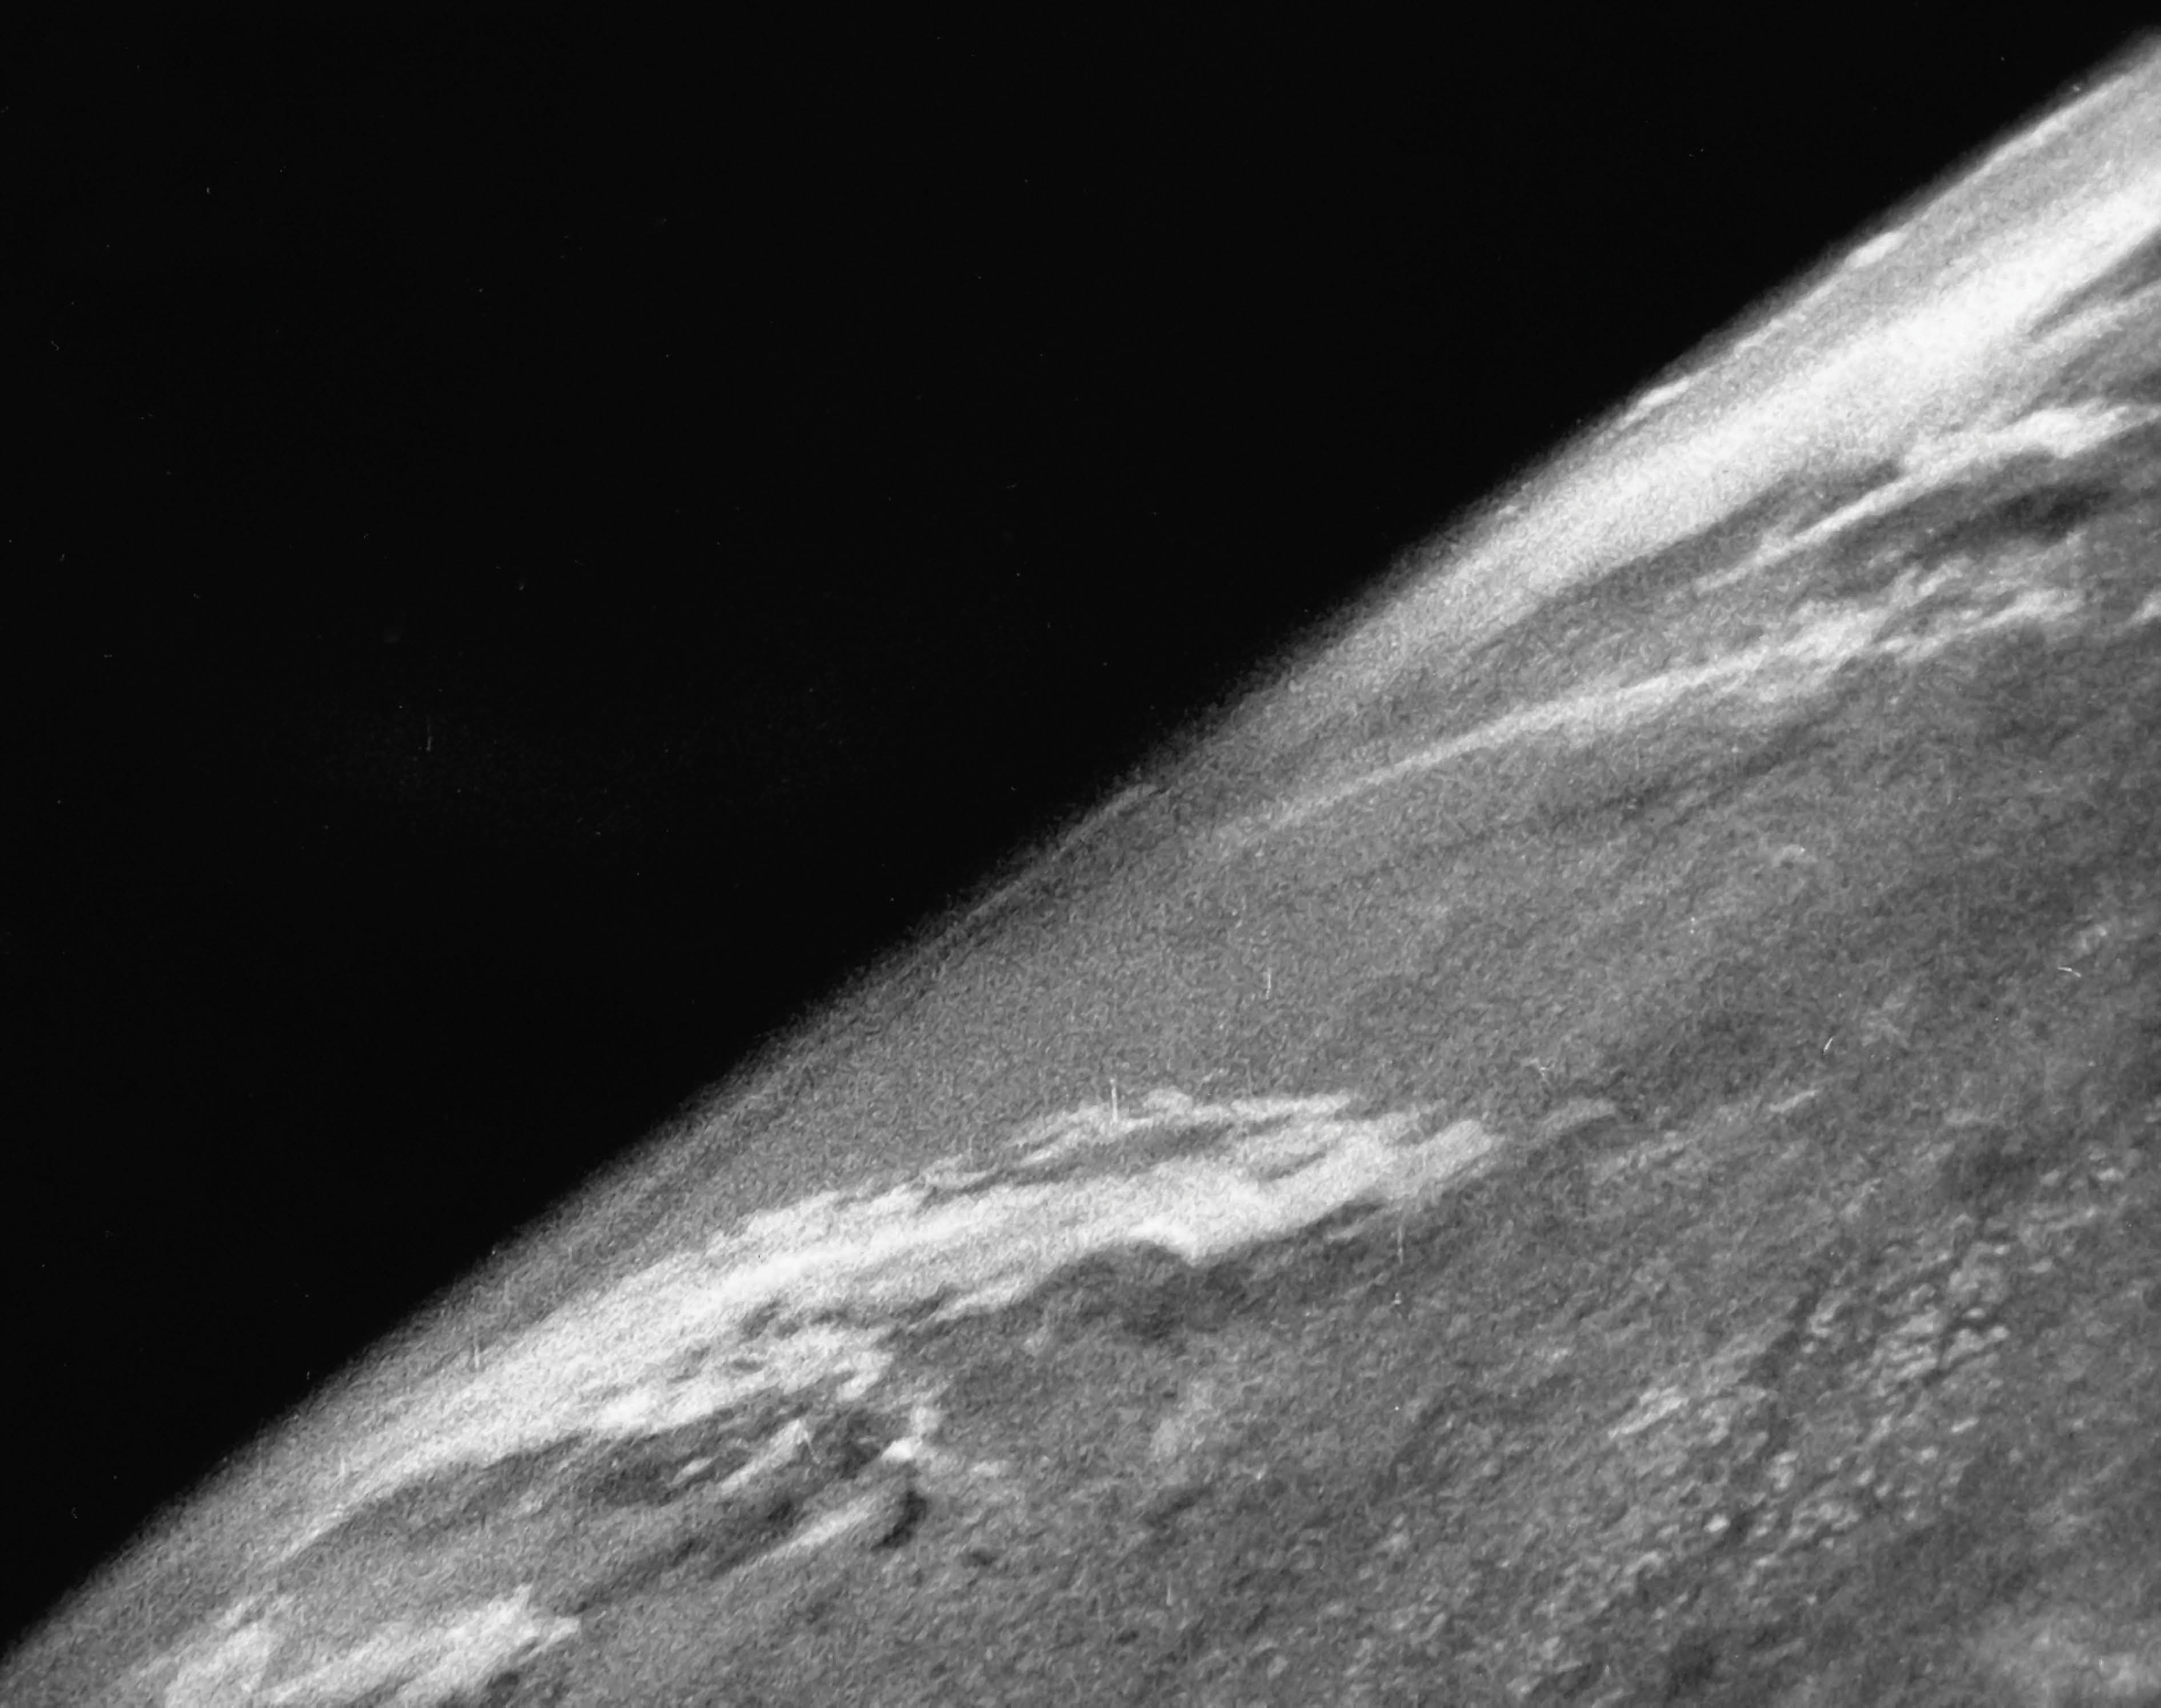 The world's first earth observation photograph from space: captured by a 35mm camera aboard the US Army's V-2 #13 missile, launched from the White Sands Missile Base, New Mexico, United States, October 24, 1946